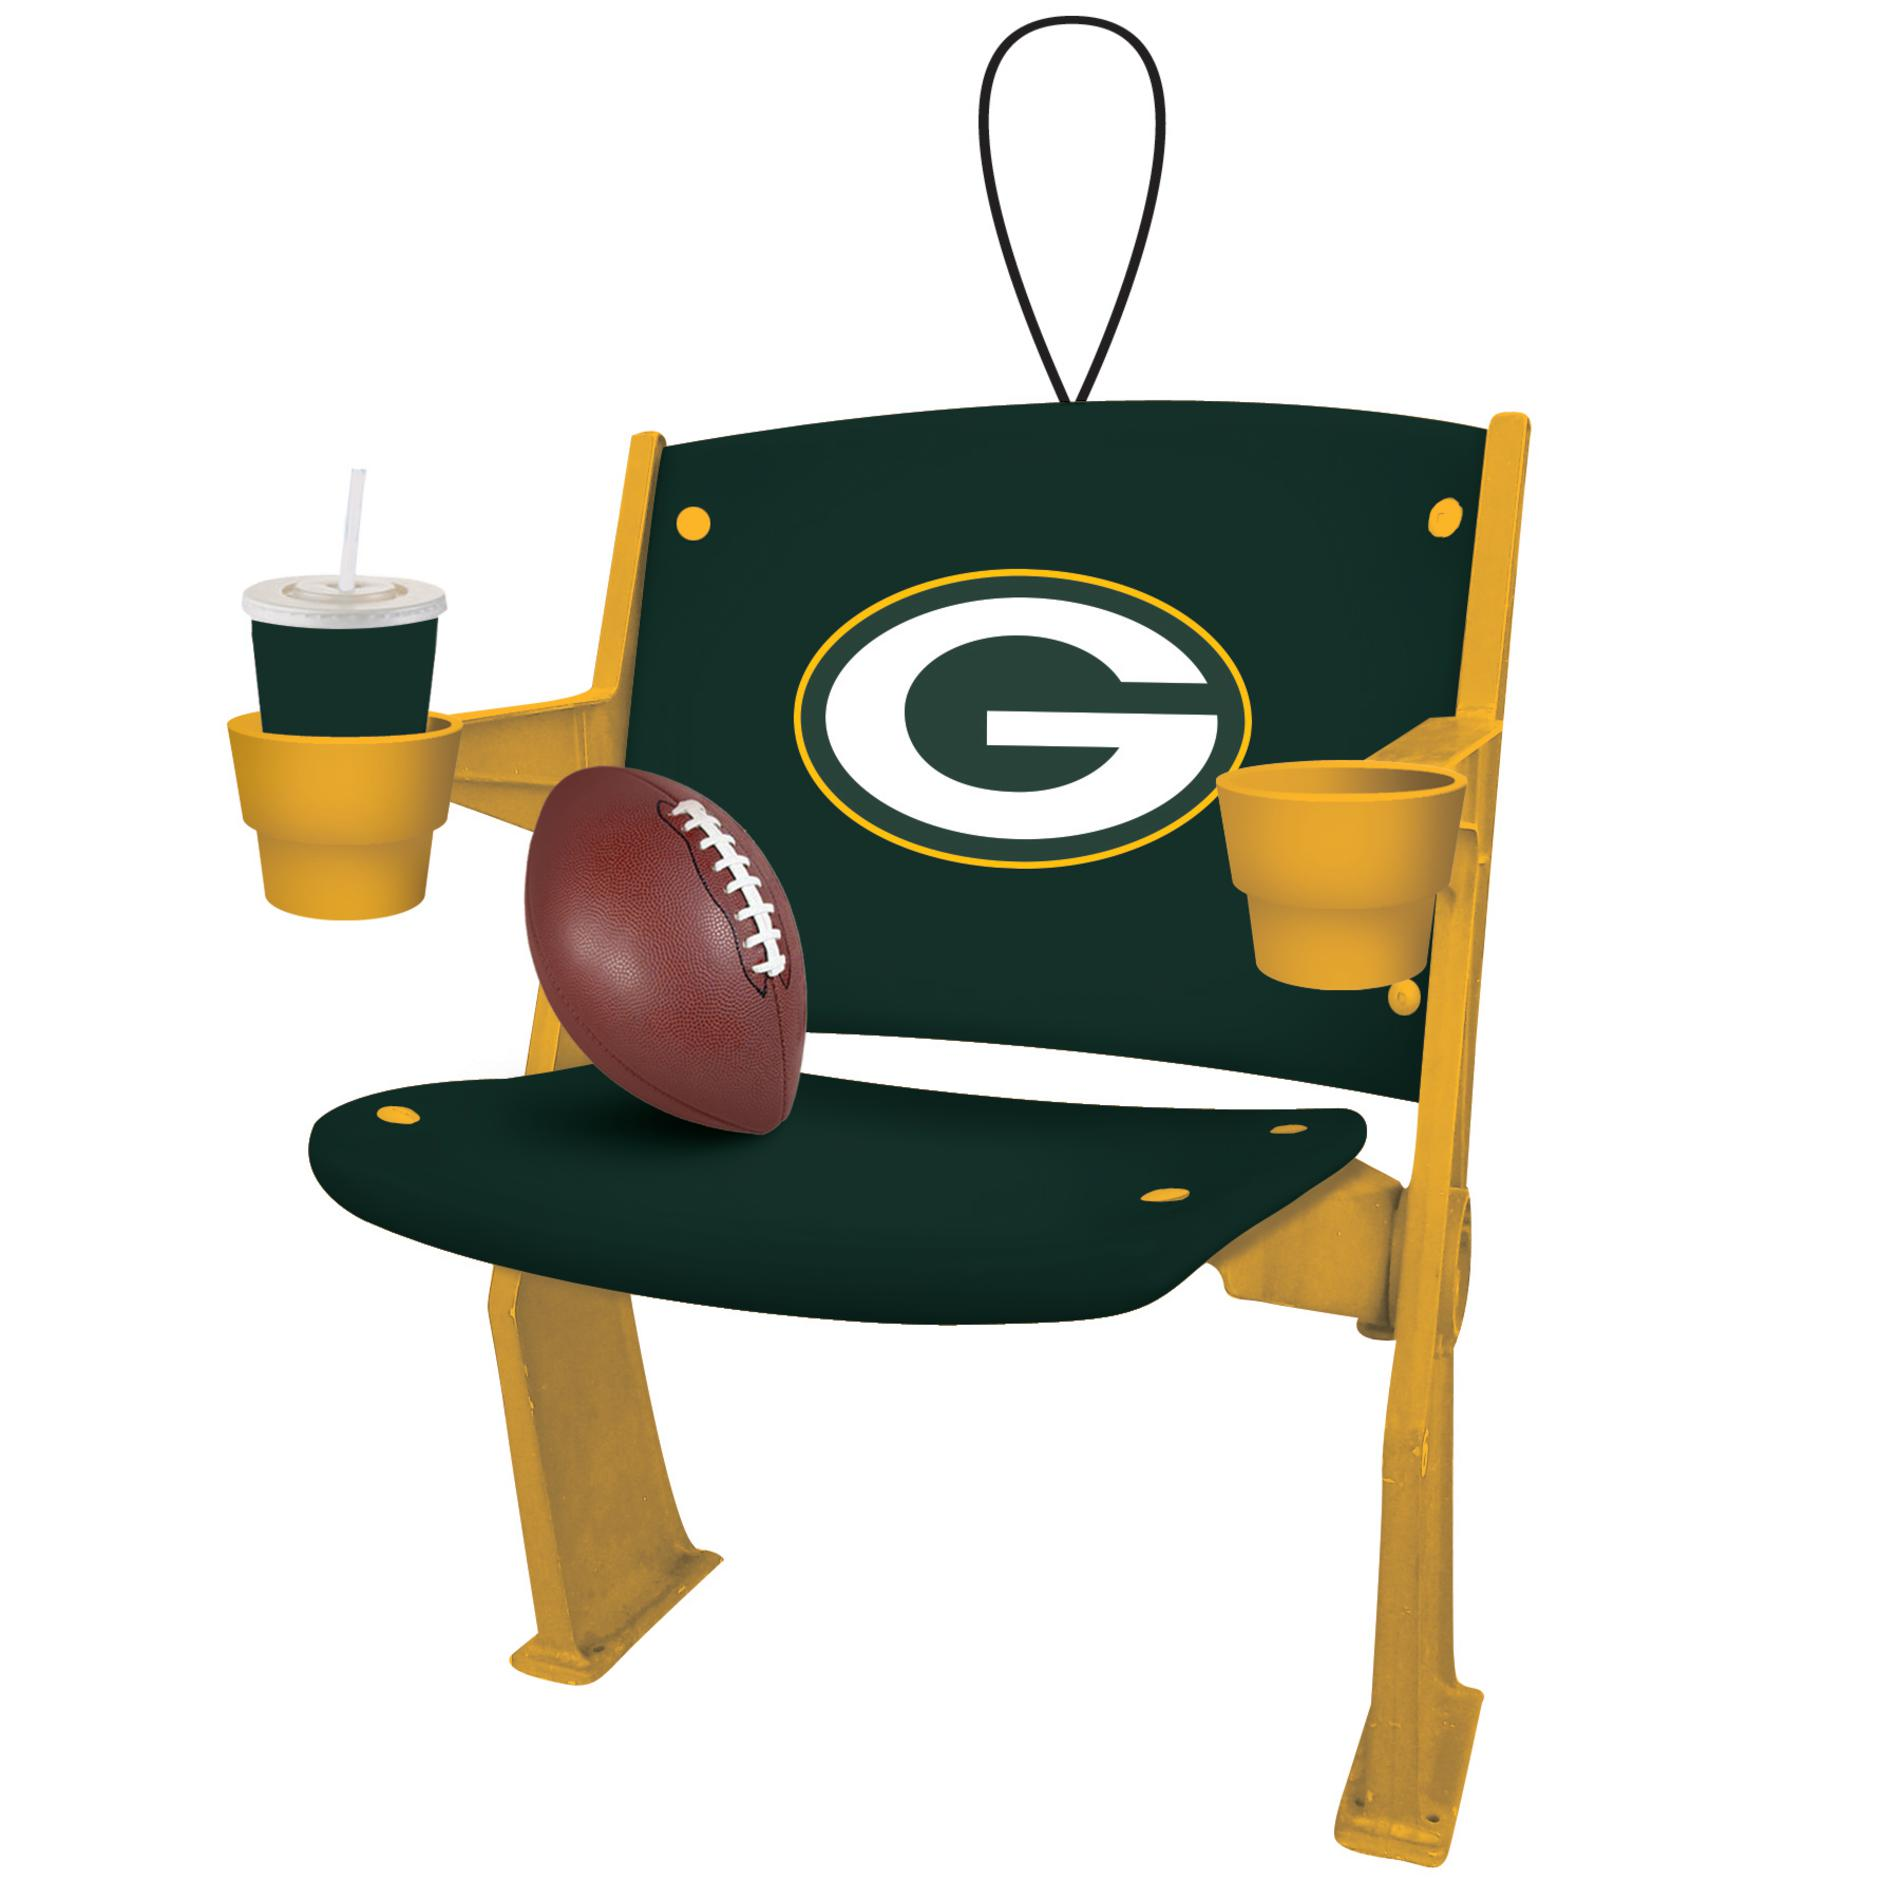 green bay packers chair antique folding rocking value nfl stadium christmas ornament